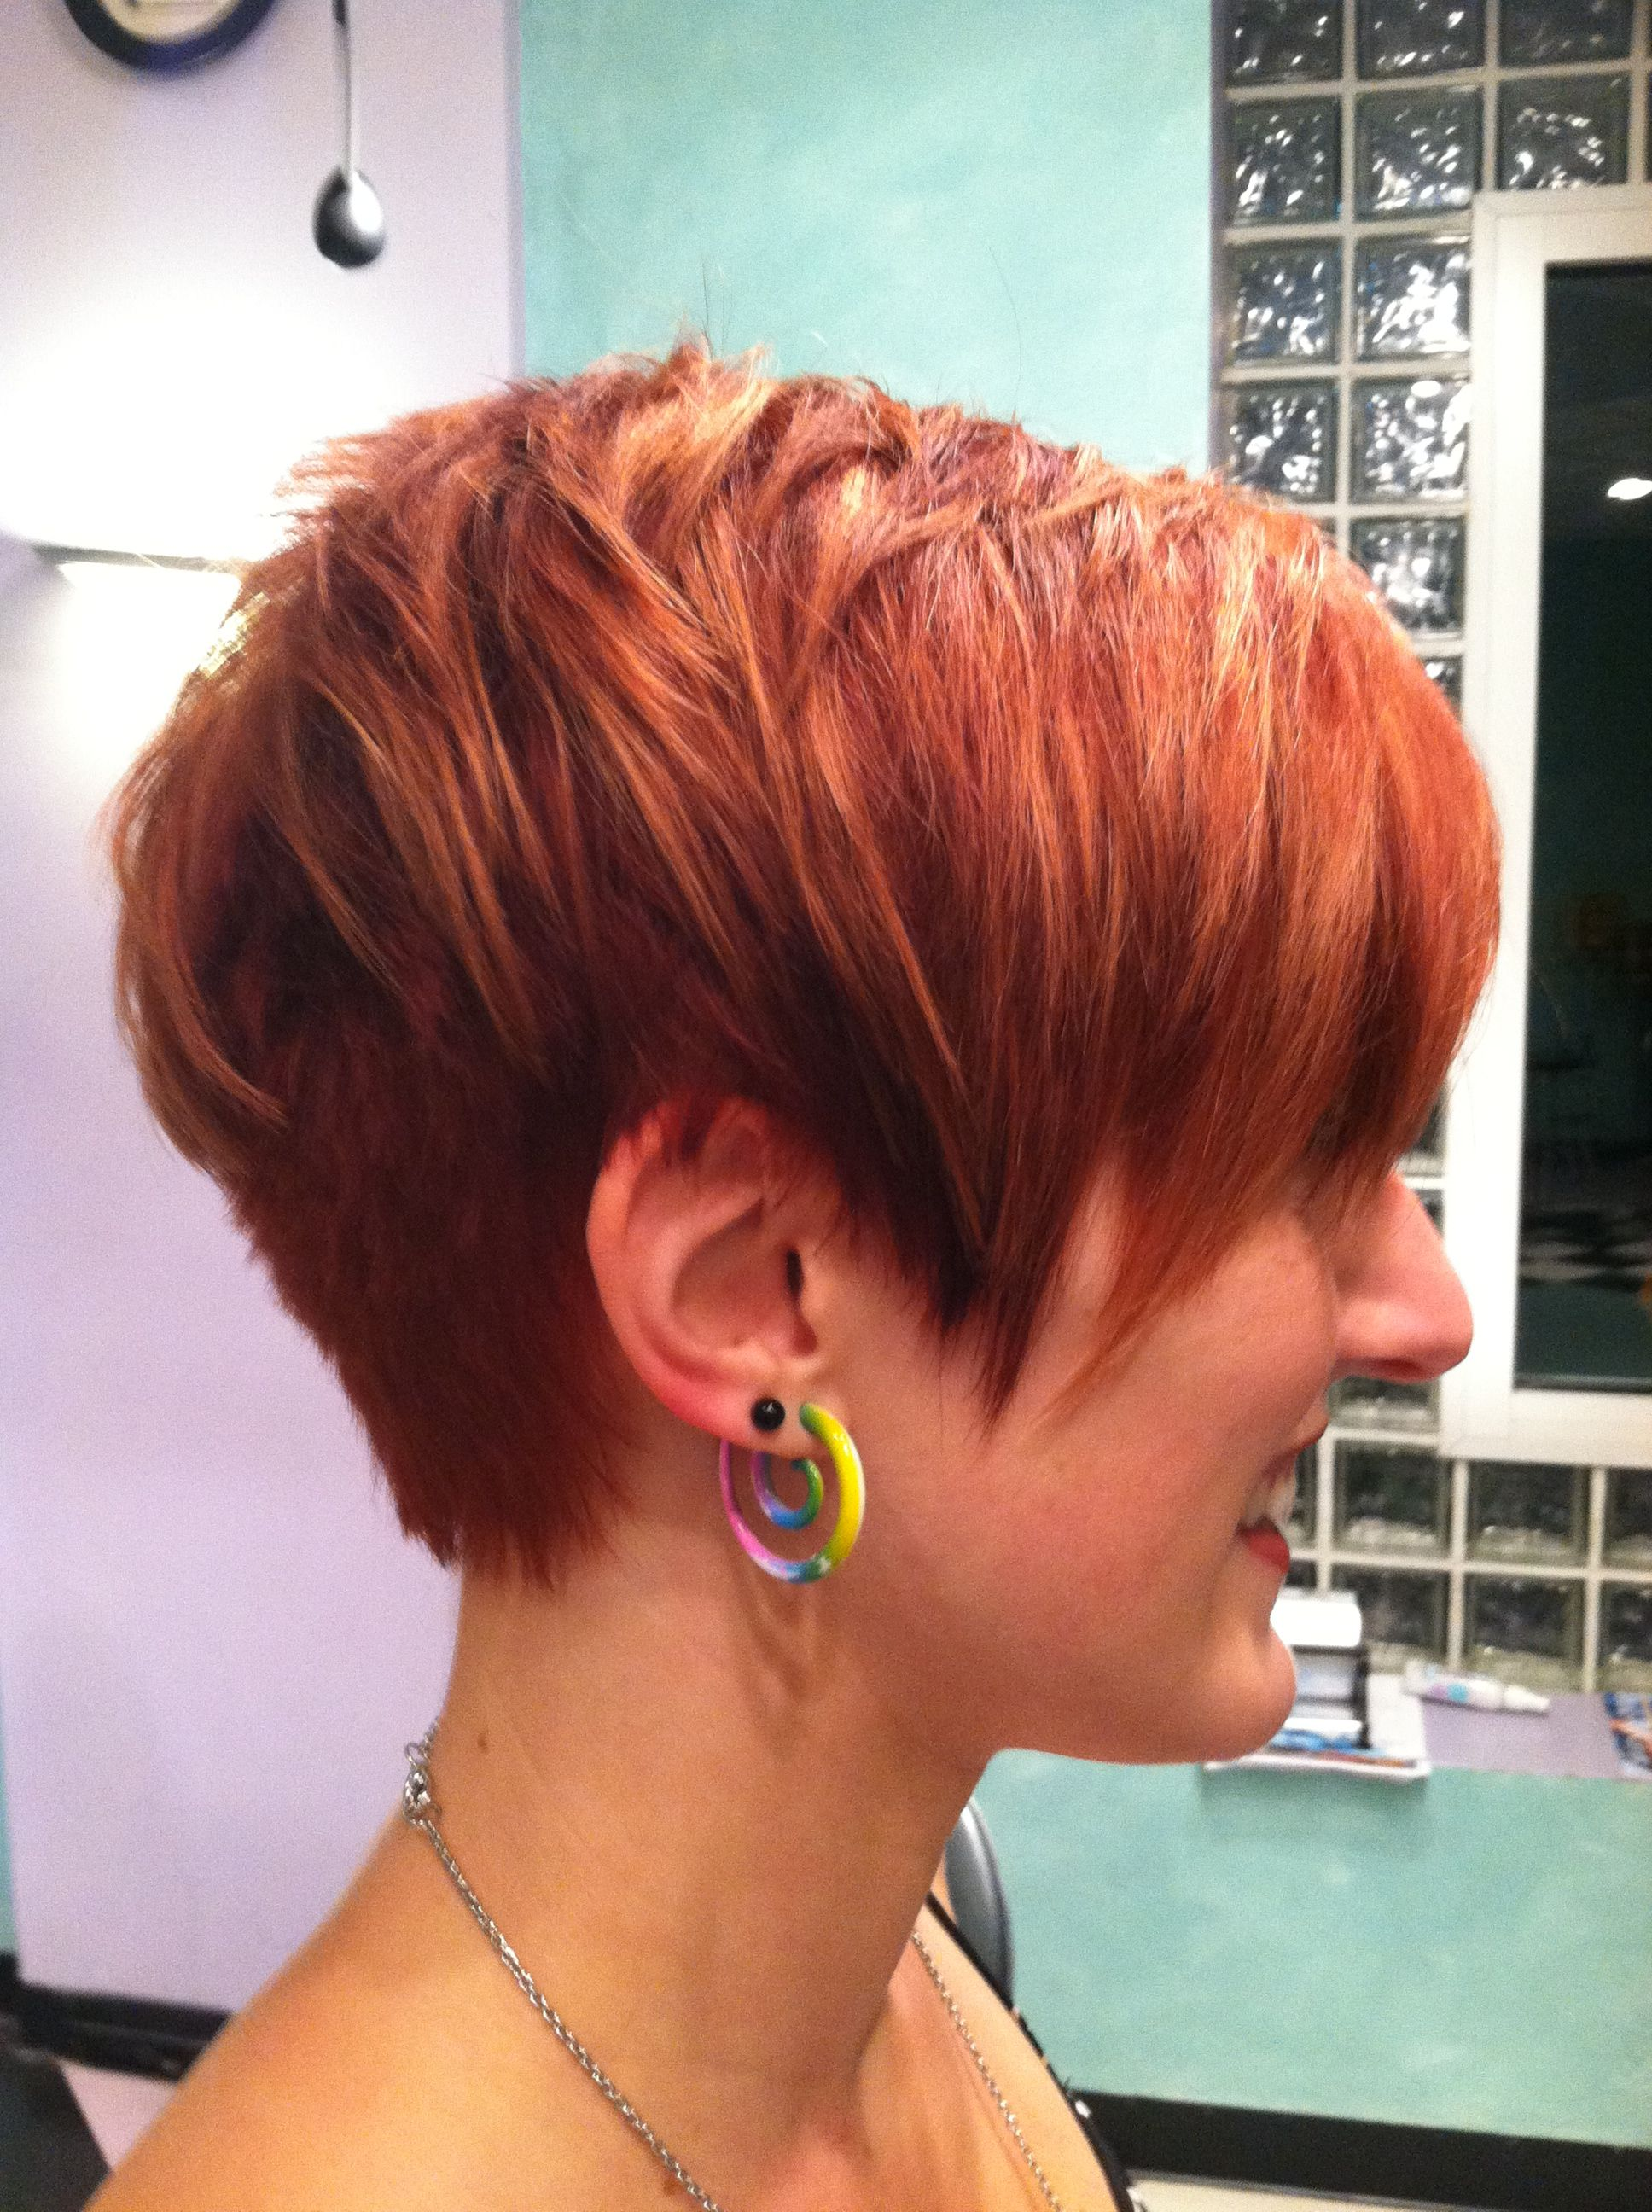 Short red hairlove everything about itetty cut and coloruc